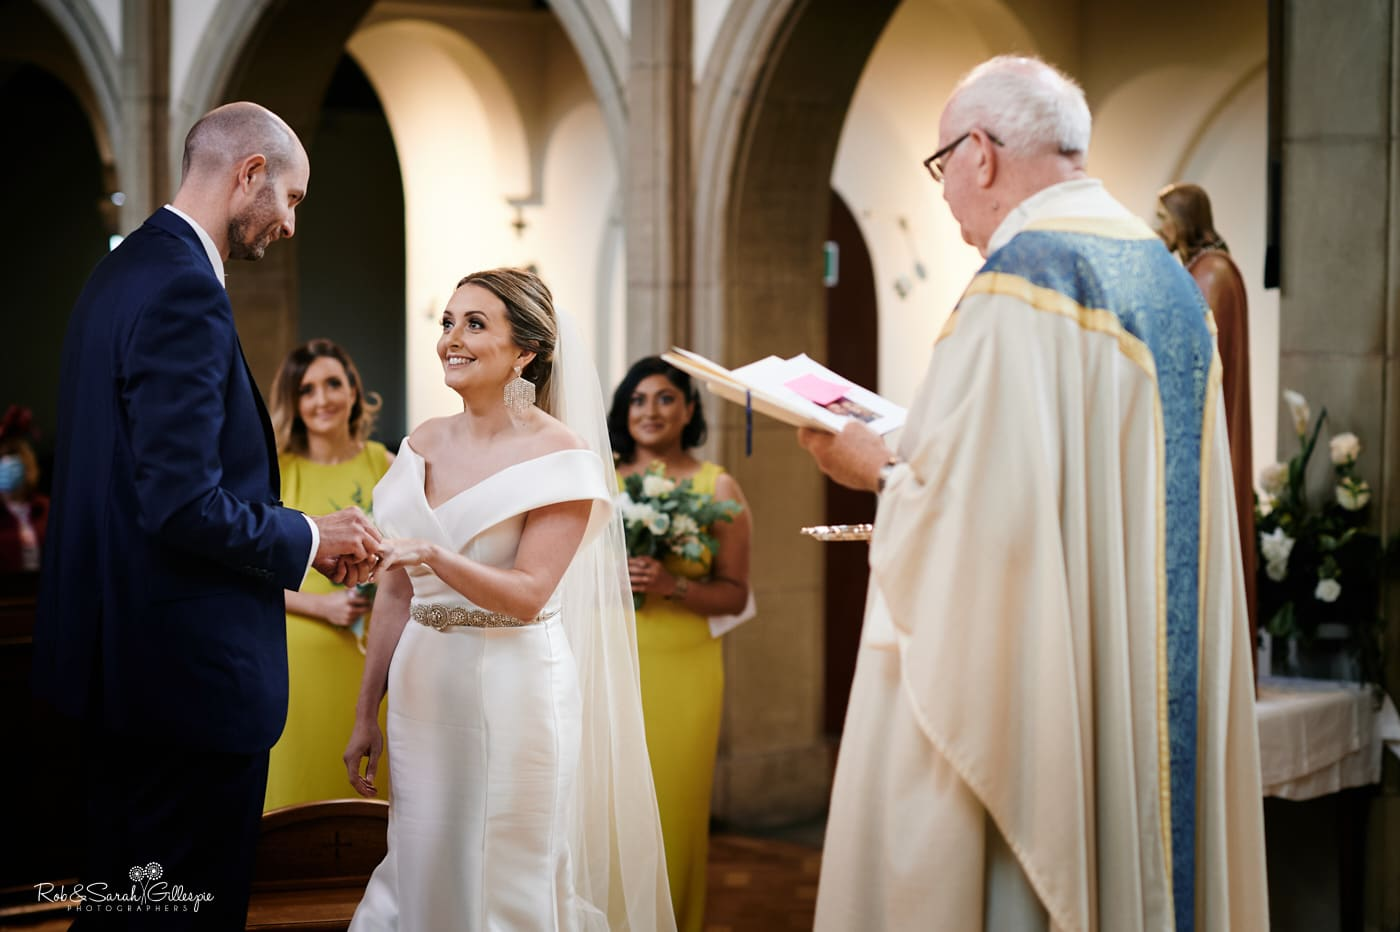 Bride and groom ring exchange during wedding ceremony in catholic church